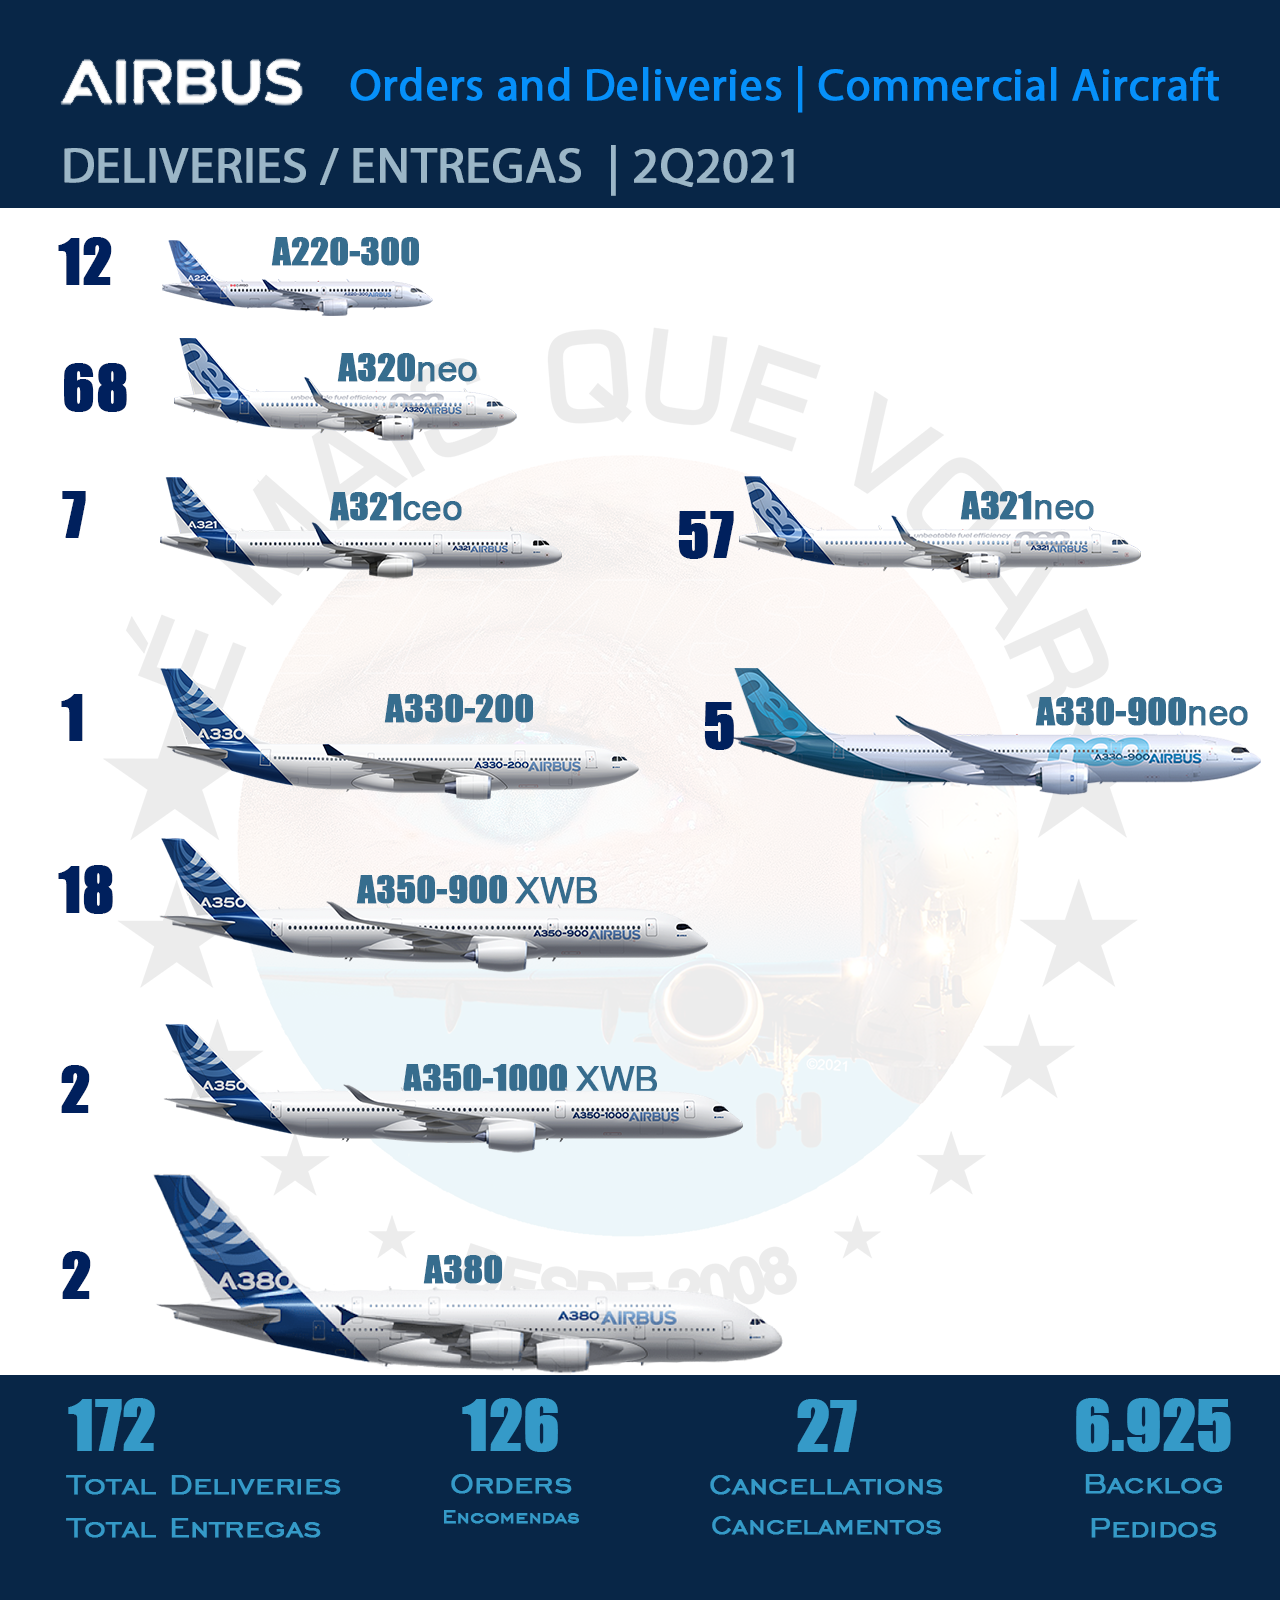 Airbus -  deliveries in the second quarter of 2021 (2Q21)